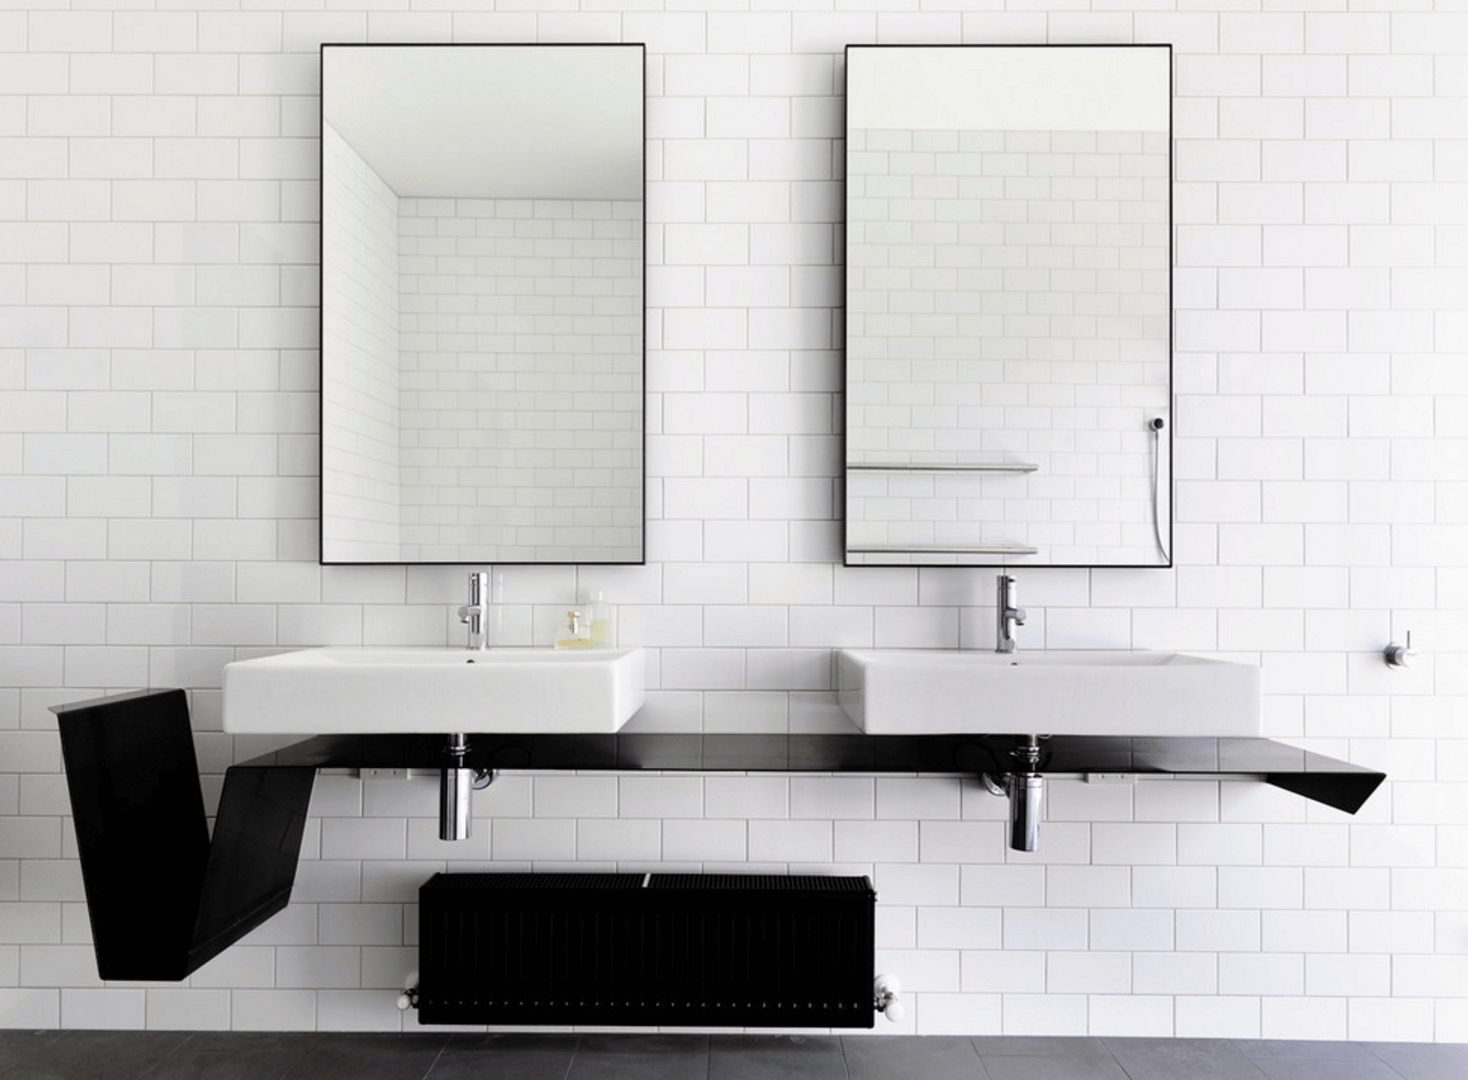 38 Bathroom Mirror Ideas To Reflect